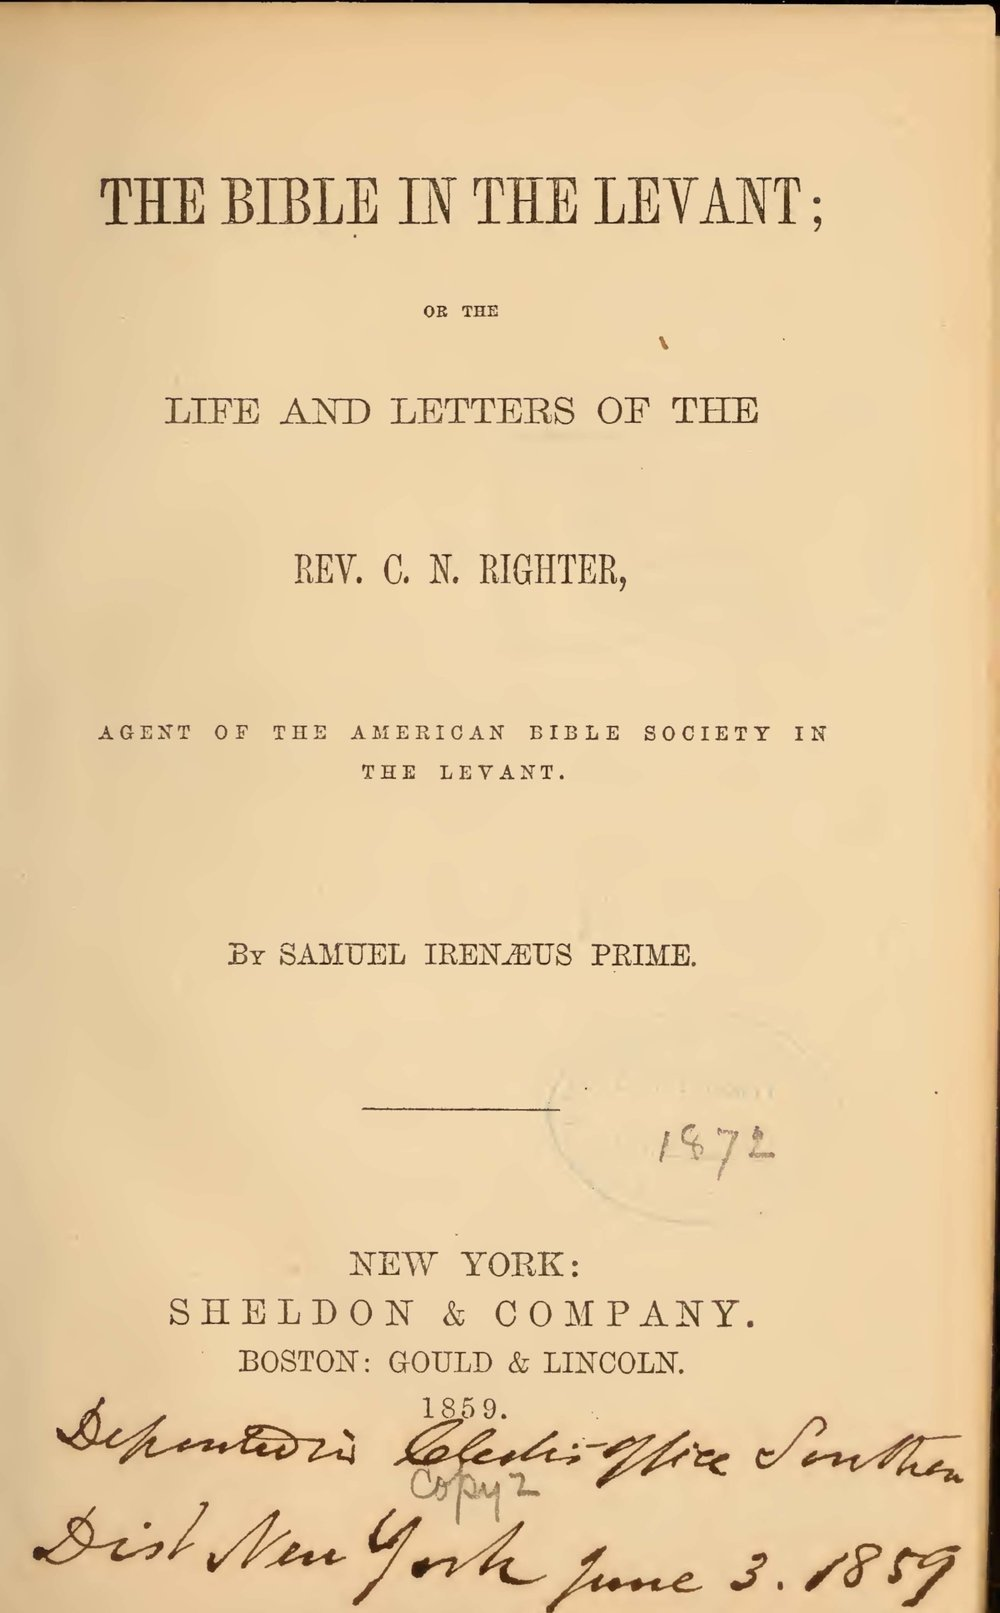 Prime, Samuel Irenaeus, The Bible in the Levant Title Page.jpg